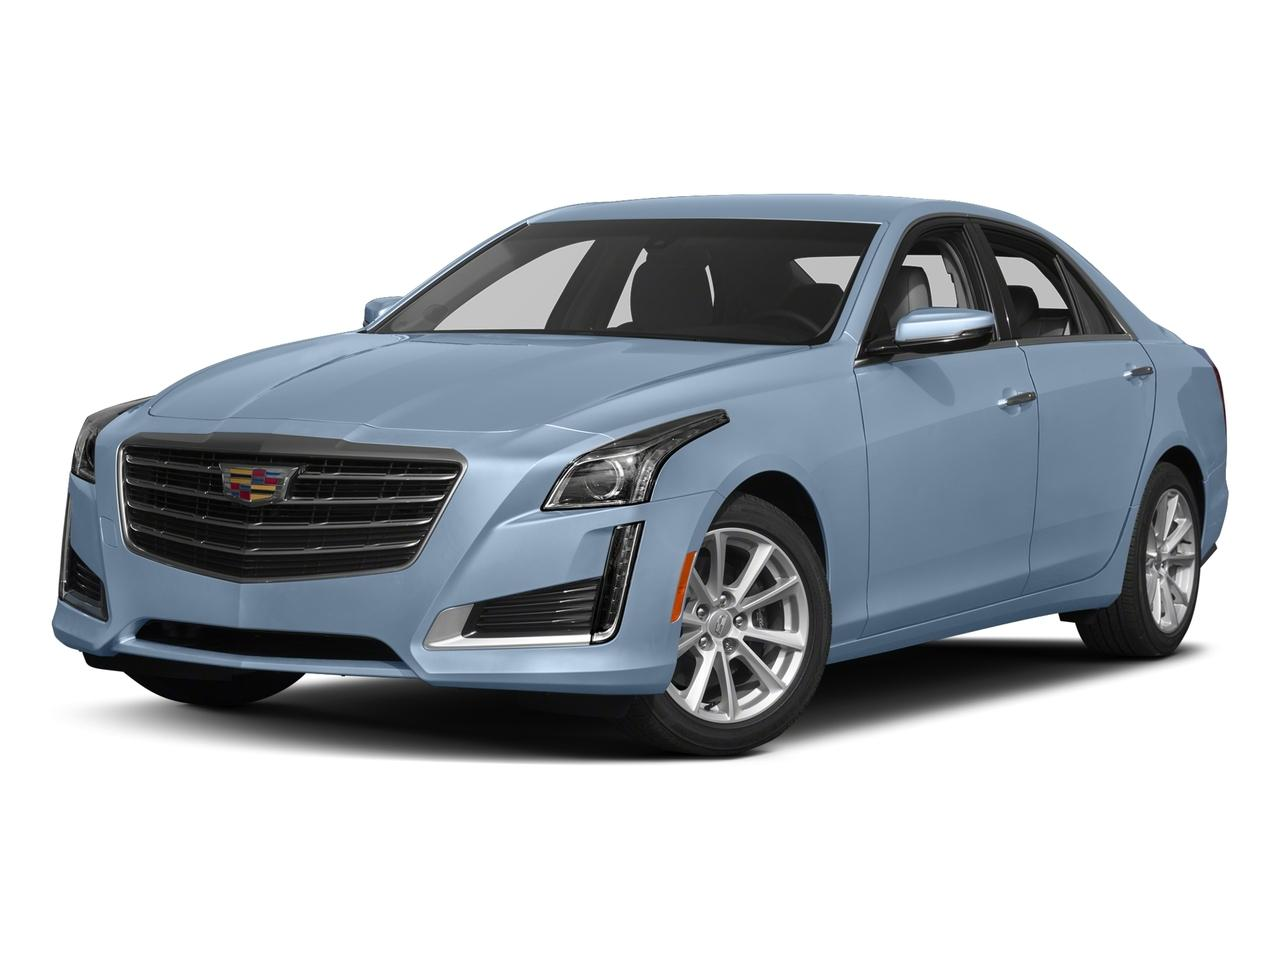 2017 Cadillac CTS Sedan Vehicle Photo in Fort Worth, TX 76116